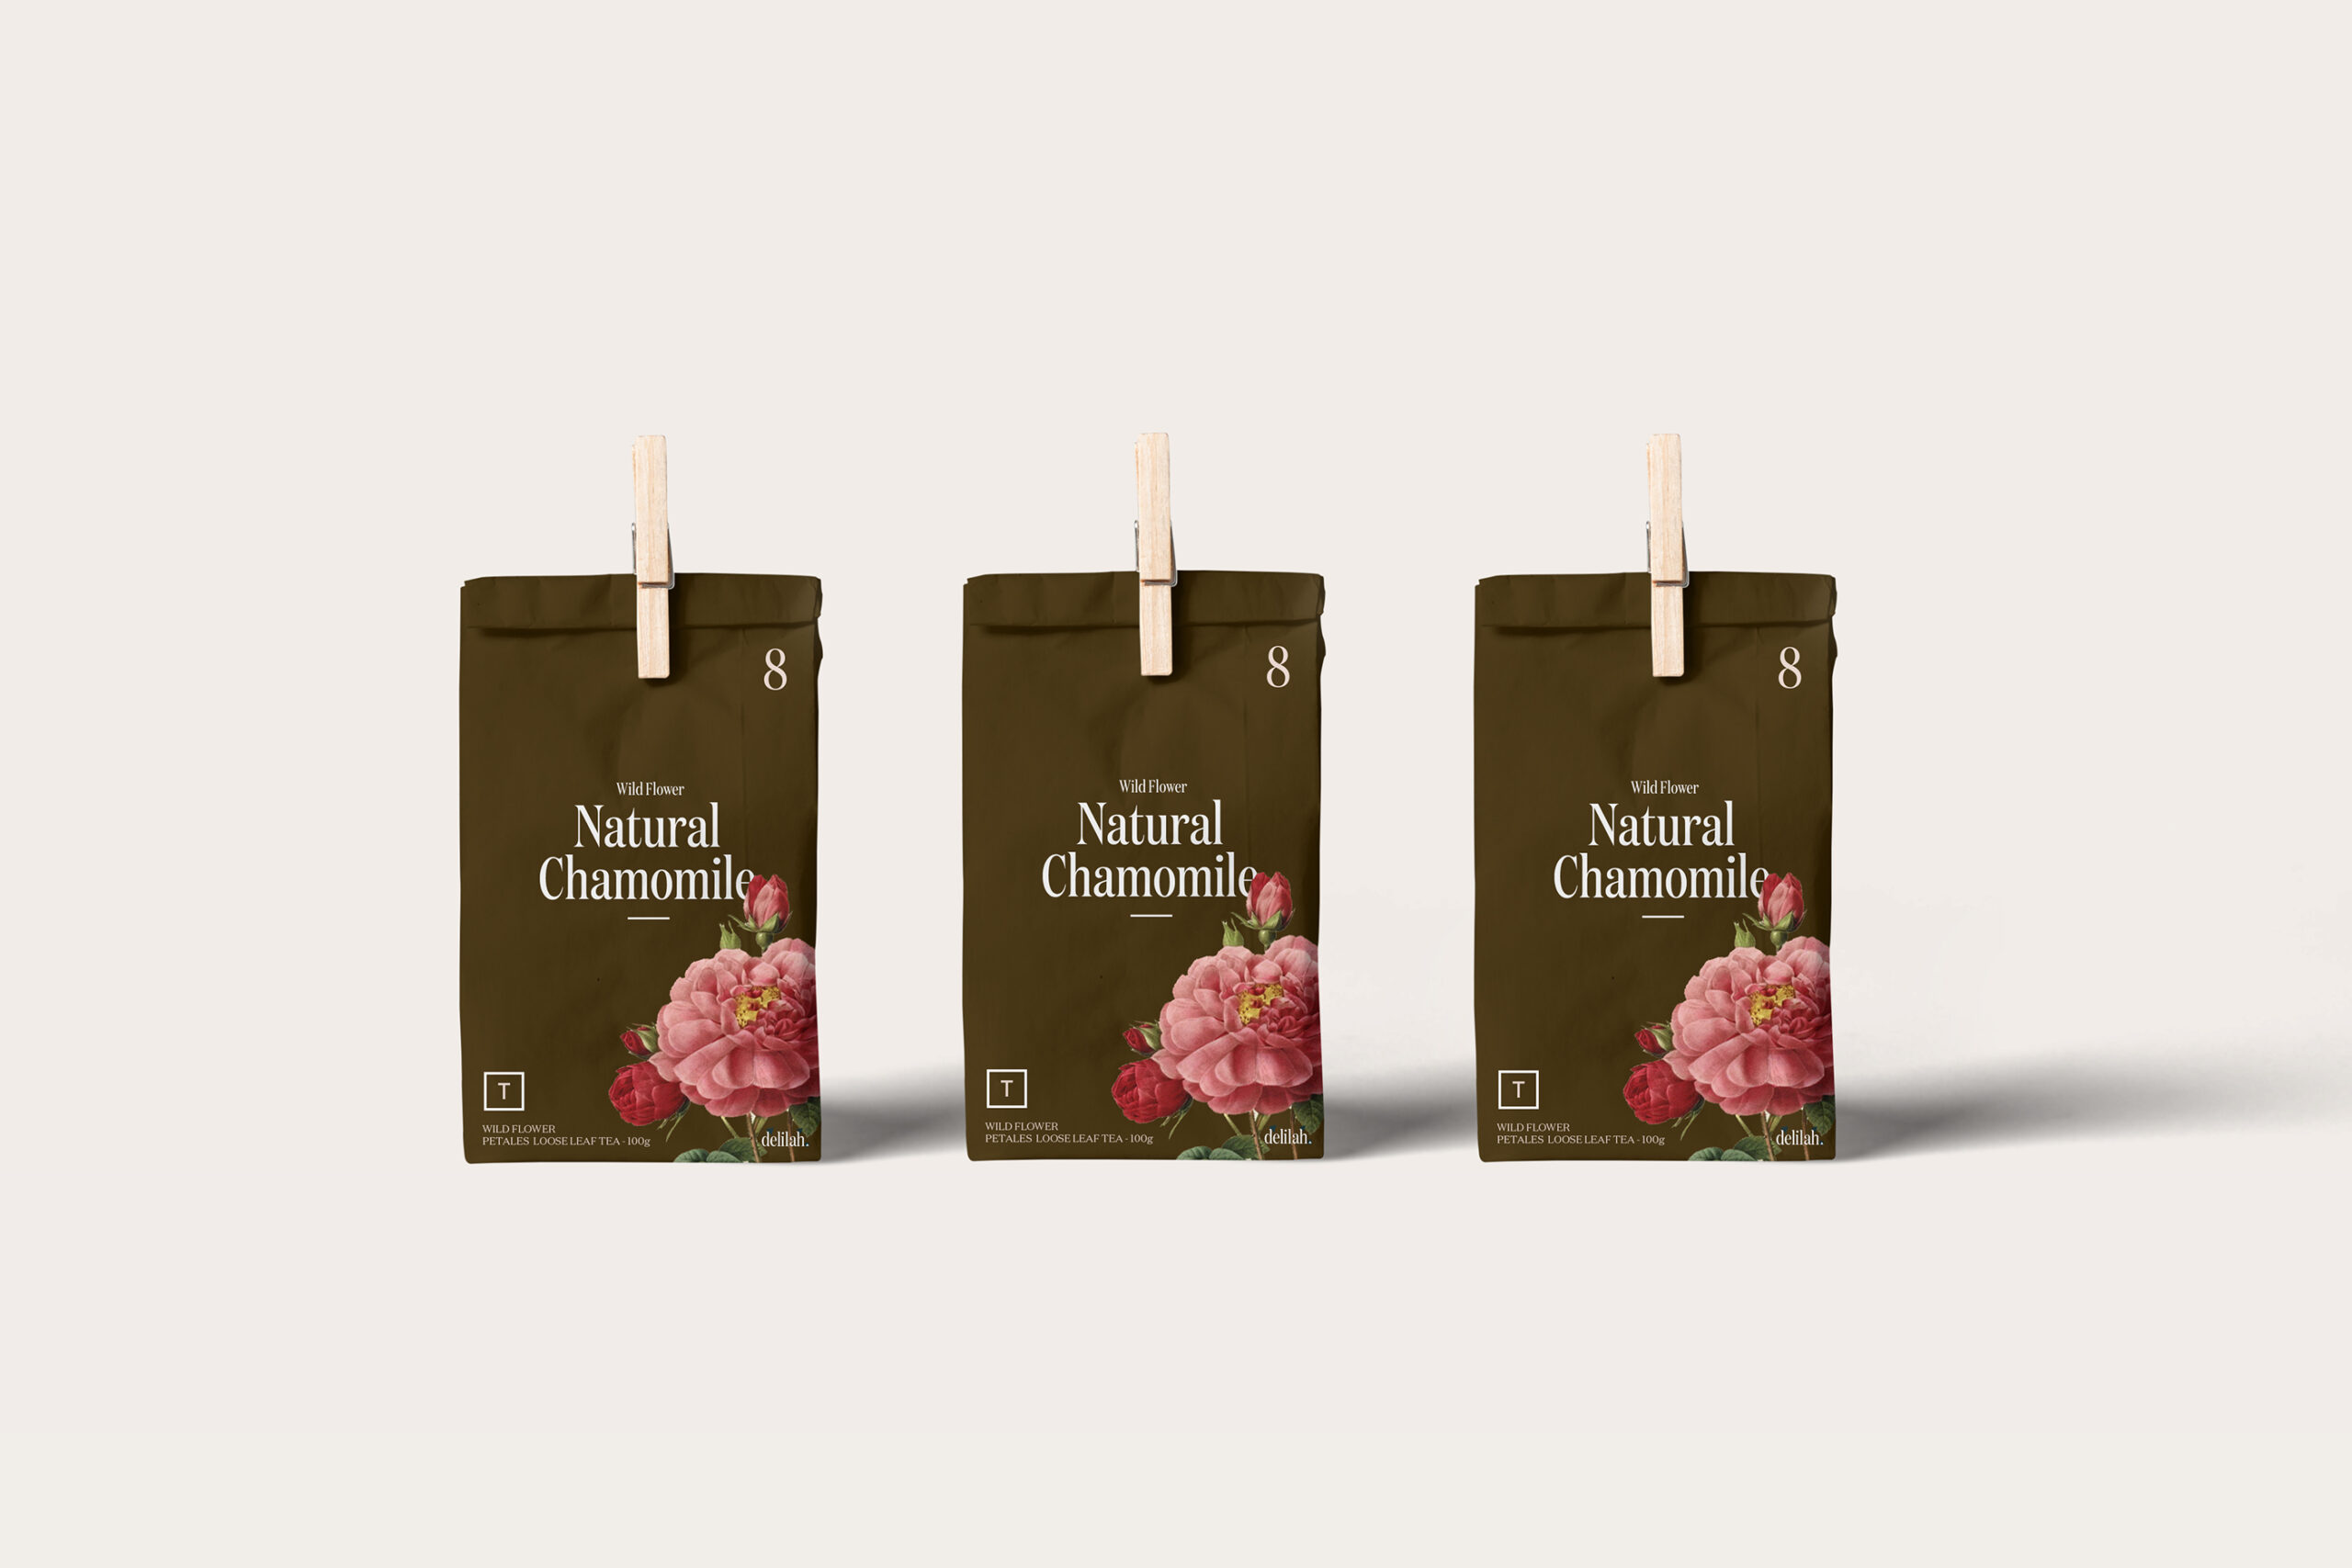 Coffee Packaging Design Agency